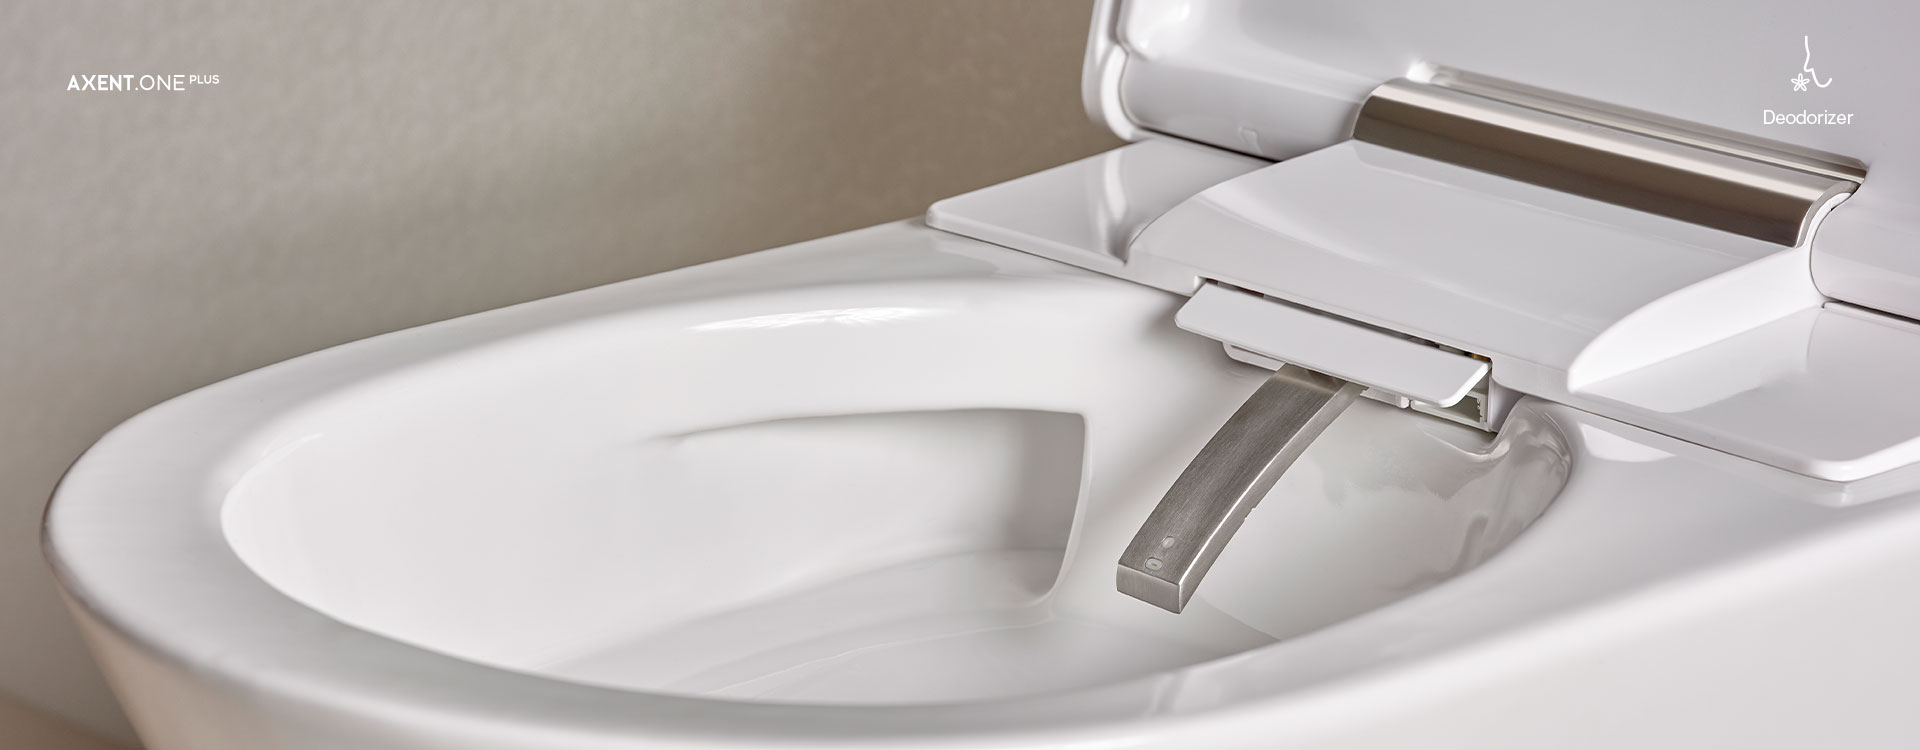 AXENT.ONE Wall-hung shower toilet | Features